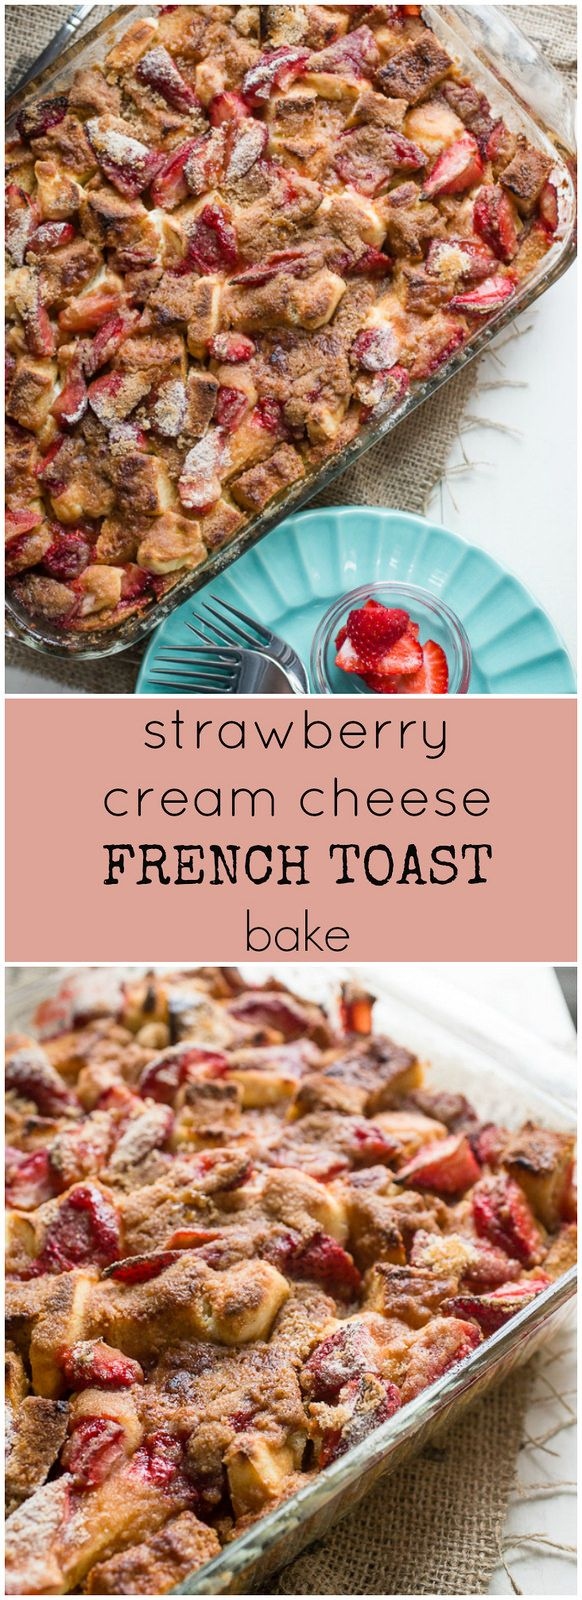 Make yourself the hero of your house this weekend with this strawberry cream cheese French toast bake. Who knew that stale bread and those almost moldy strawberries would get you so far in life? If you're anything like me when … More »